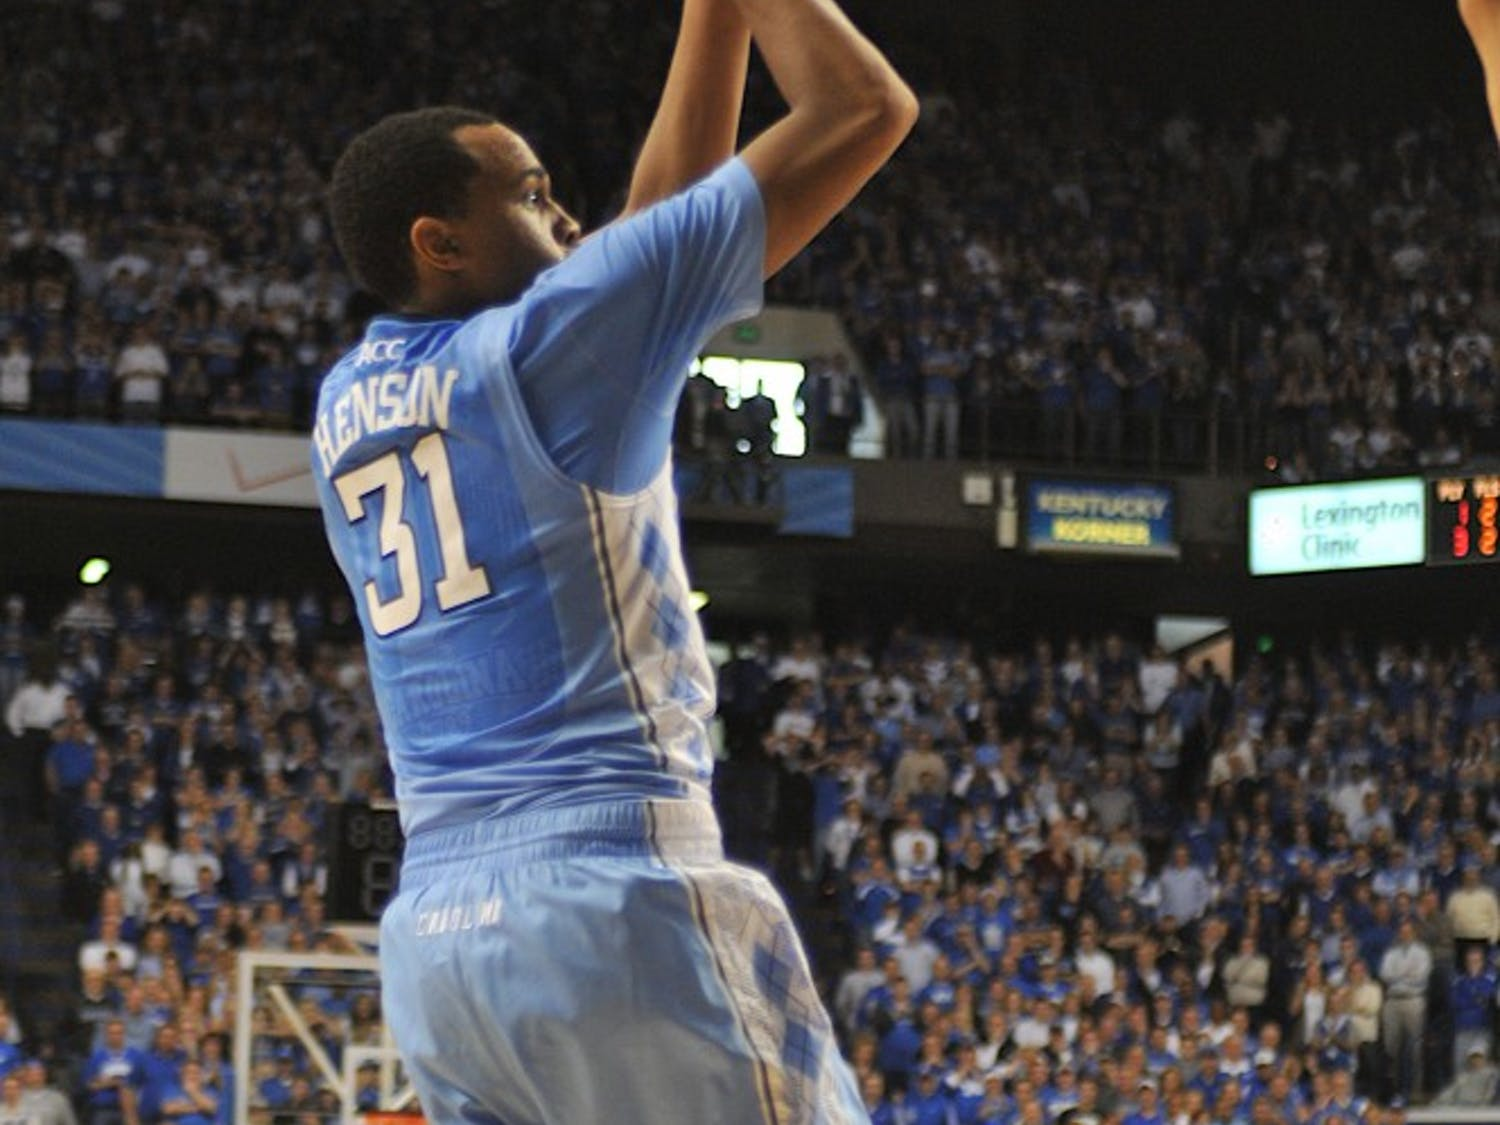 UNC forward John Henson attempts to shoot the ball over Anthony Davis in the final seconds of the game.